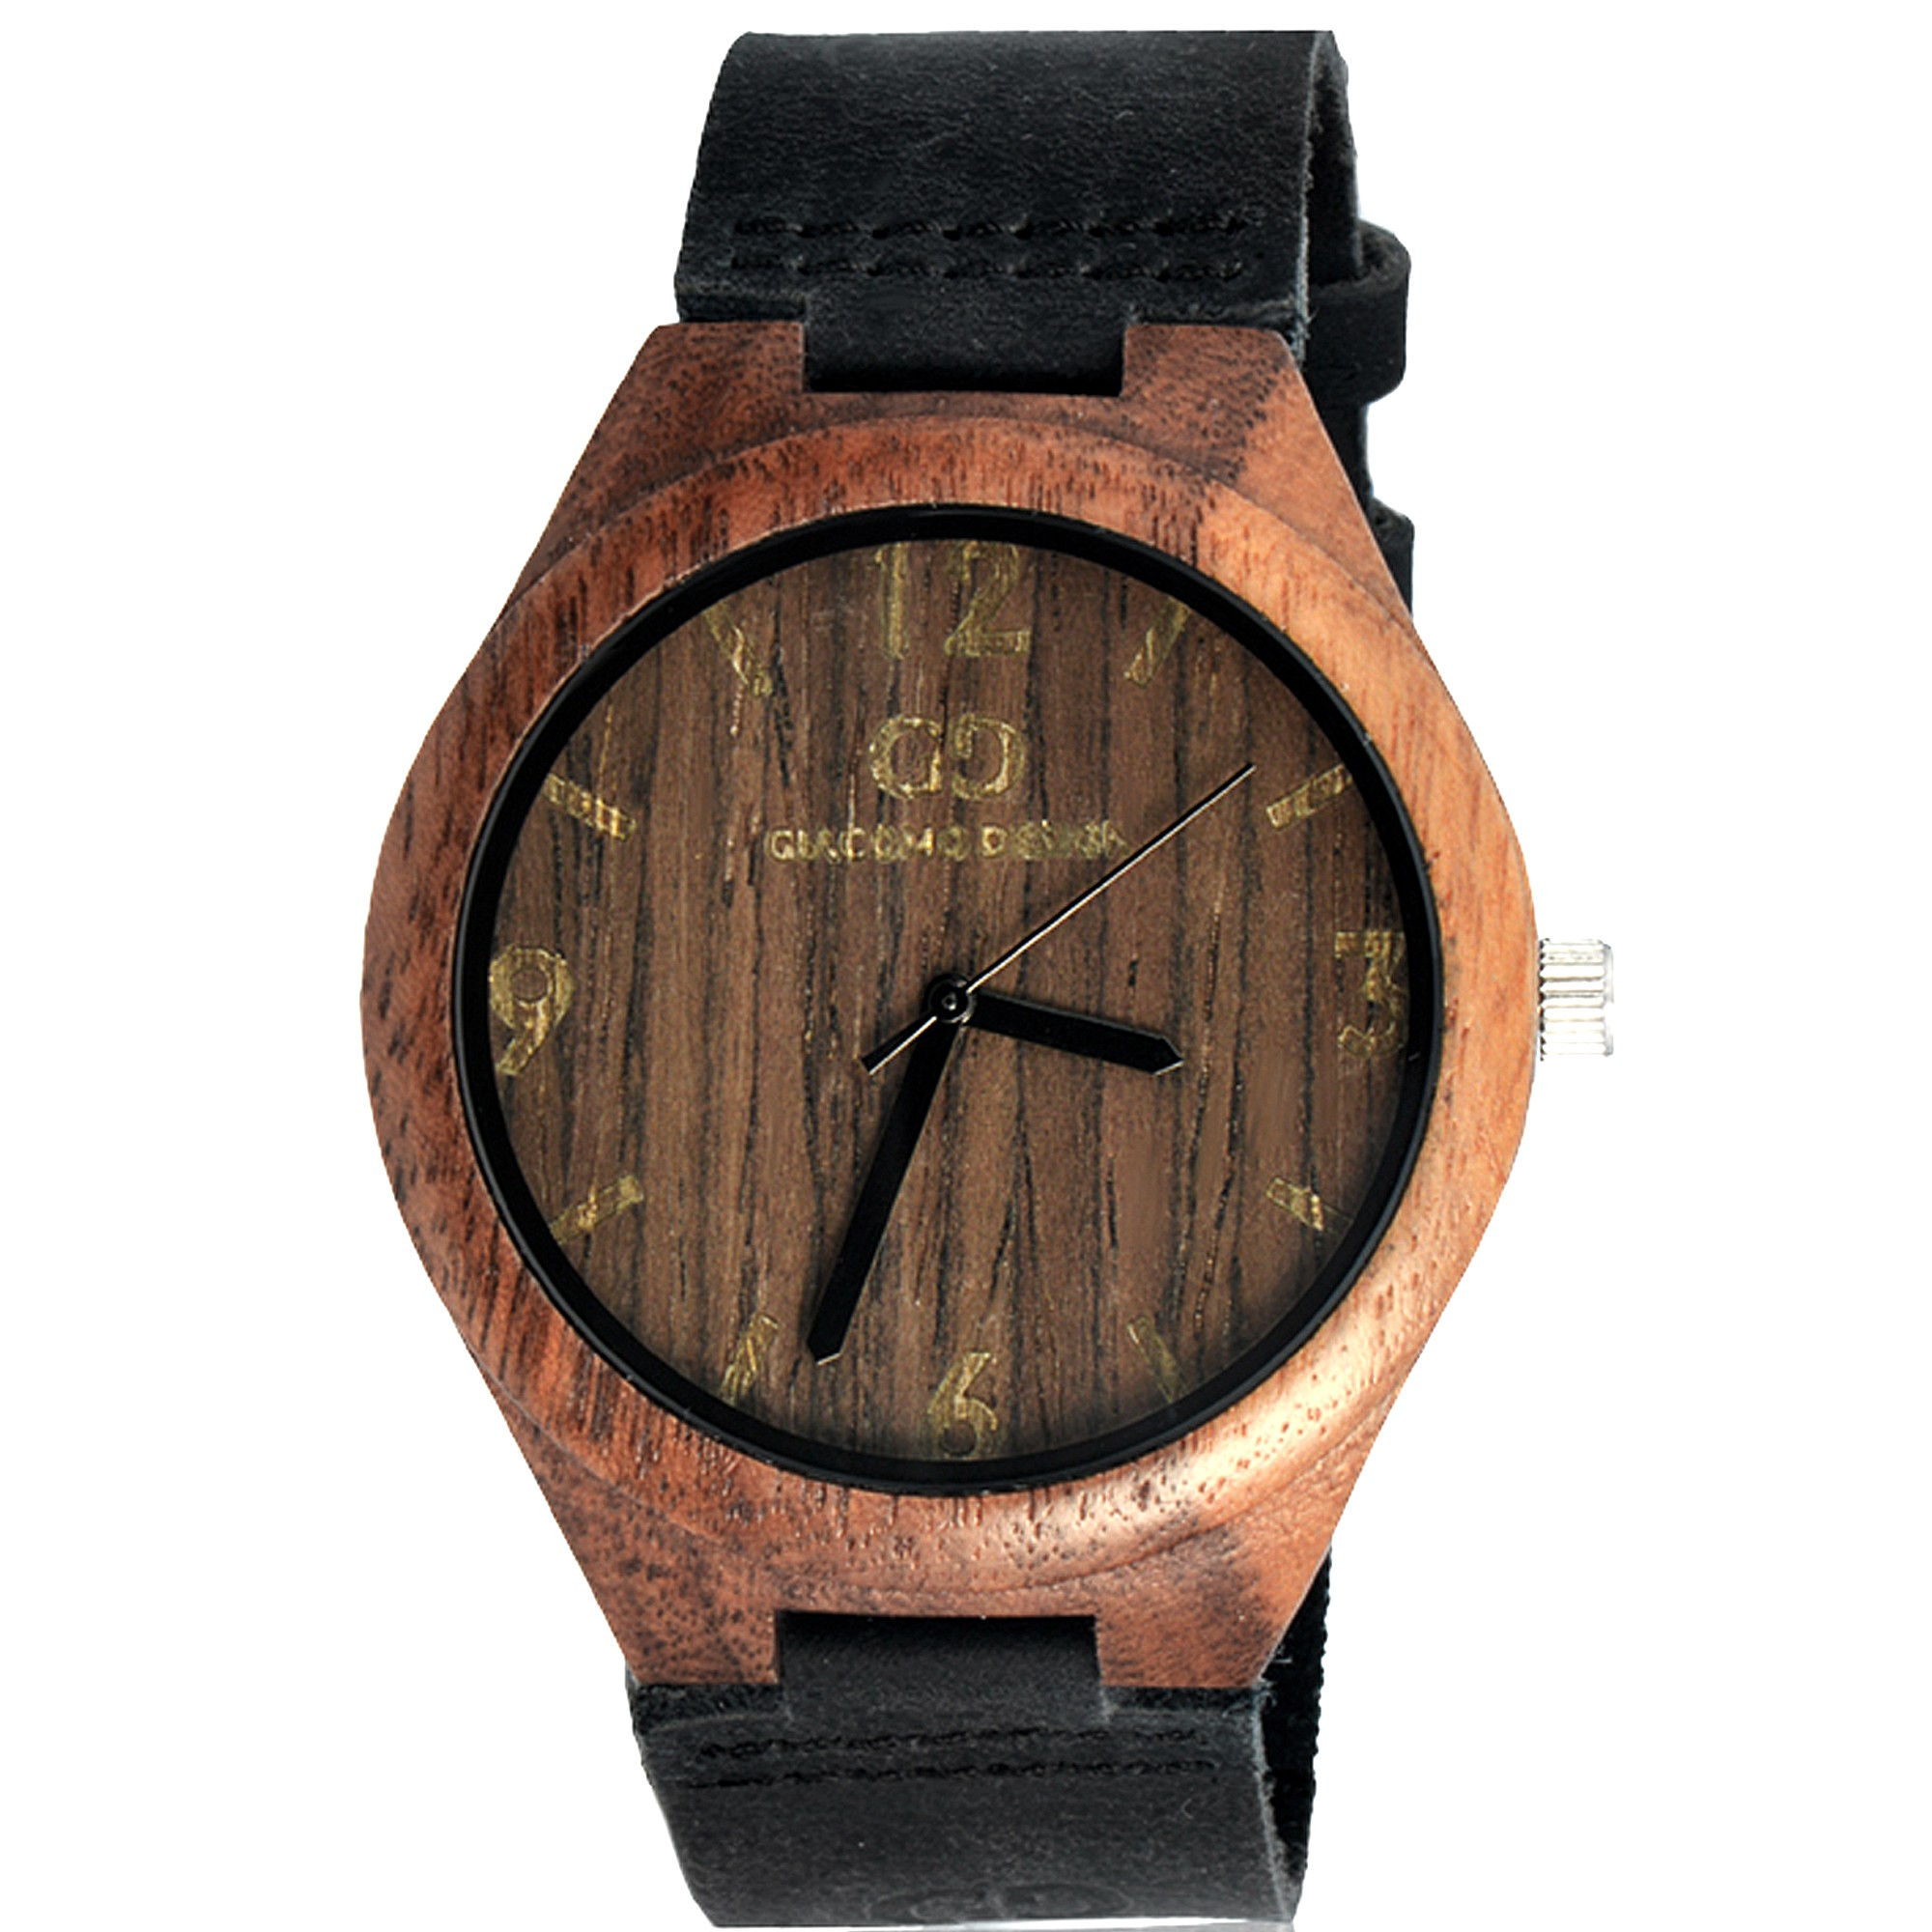 Men's watch Giacomo Design GD08004 Walnut Wood leather strap